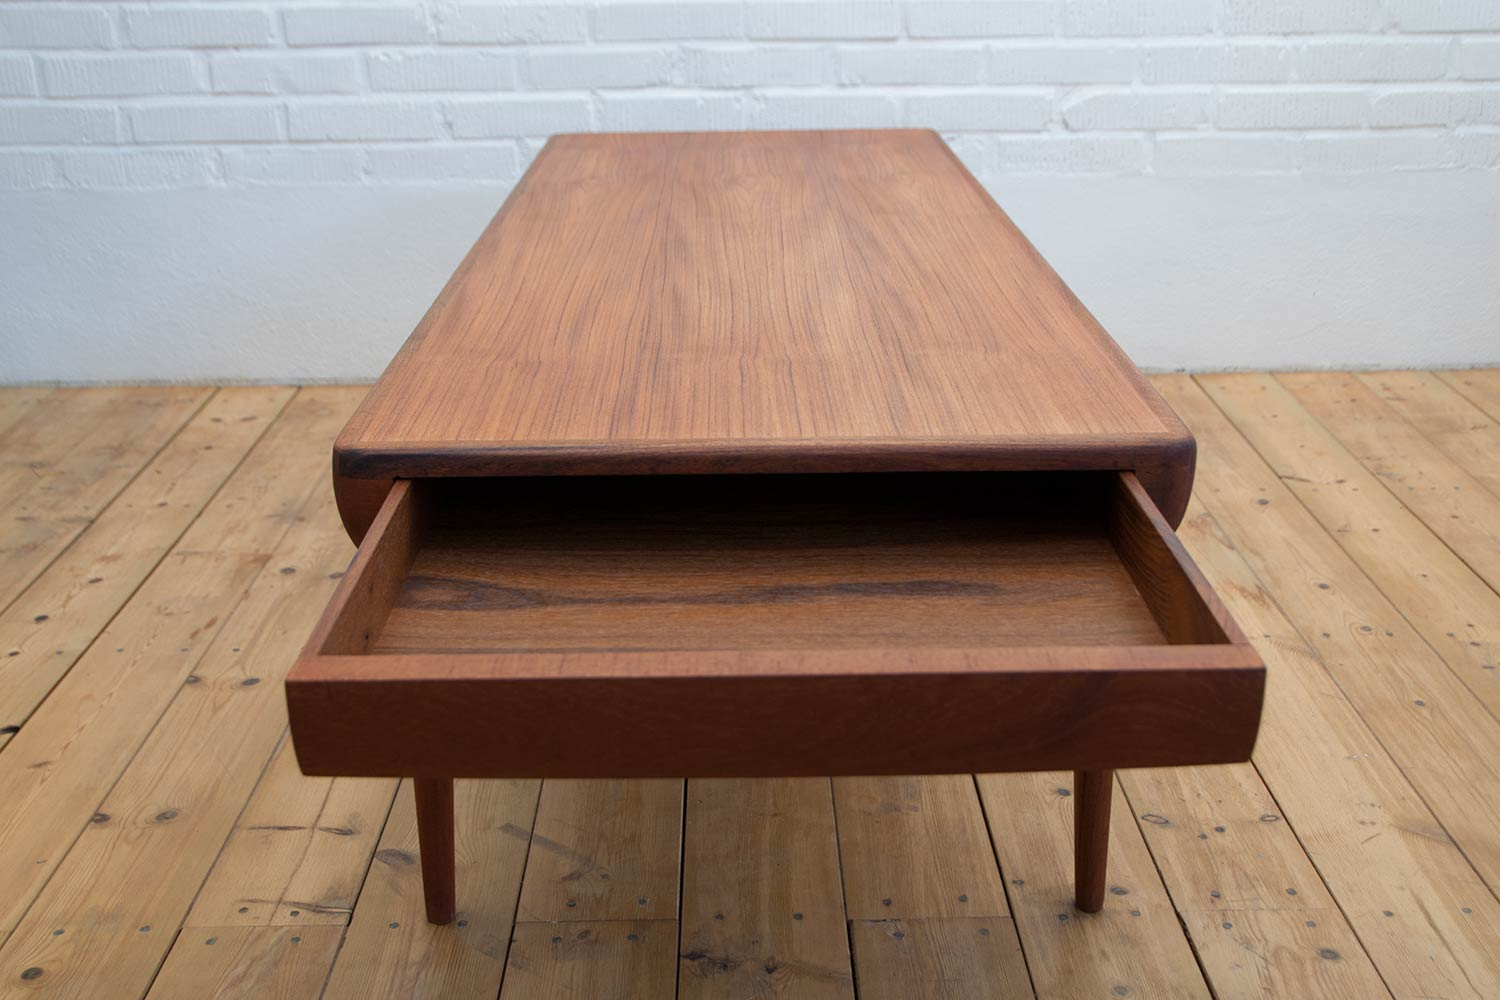 Johannes andersen teak coffee table scandinavian design johannes andersen teak coffee table geotapseo Gallery